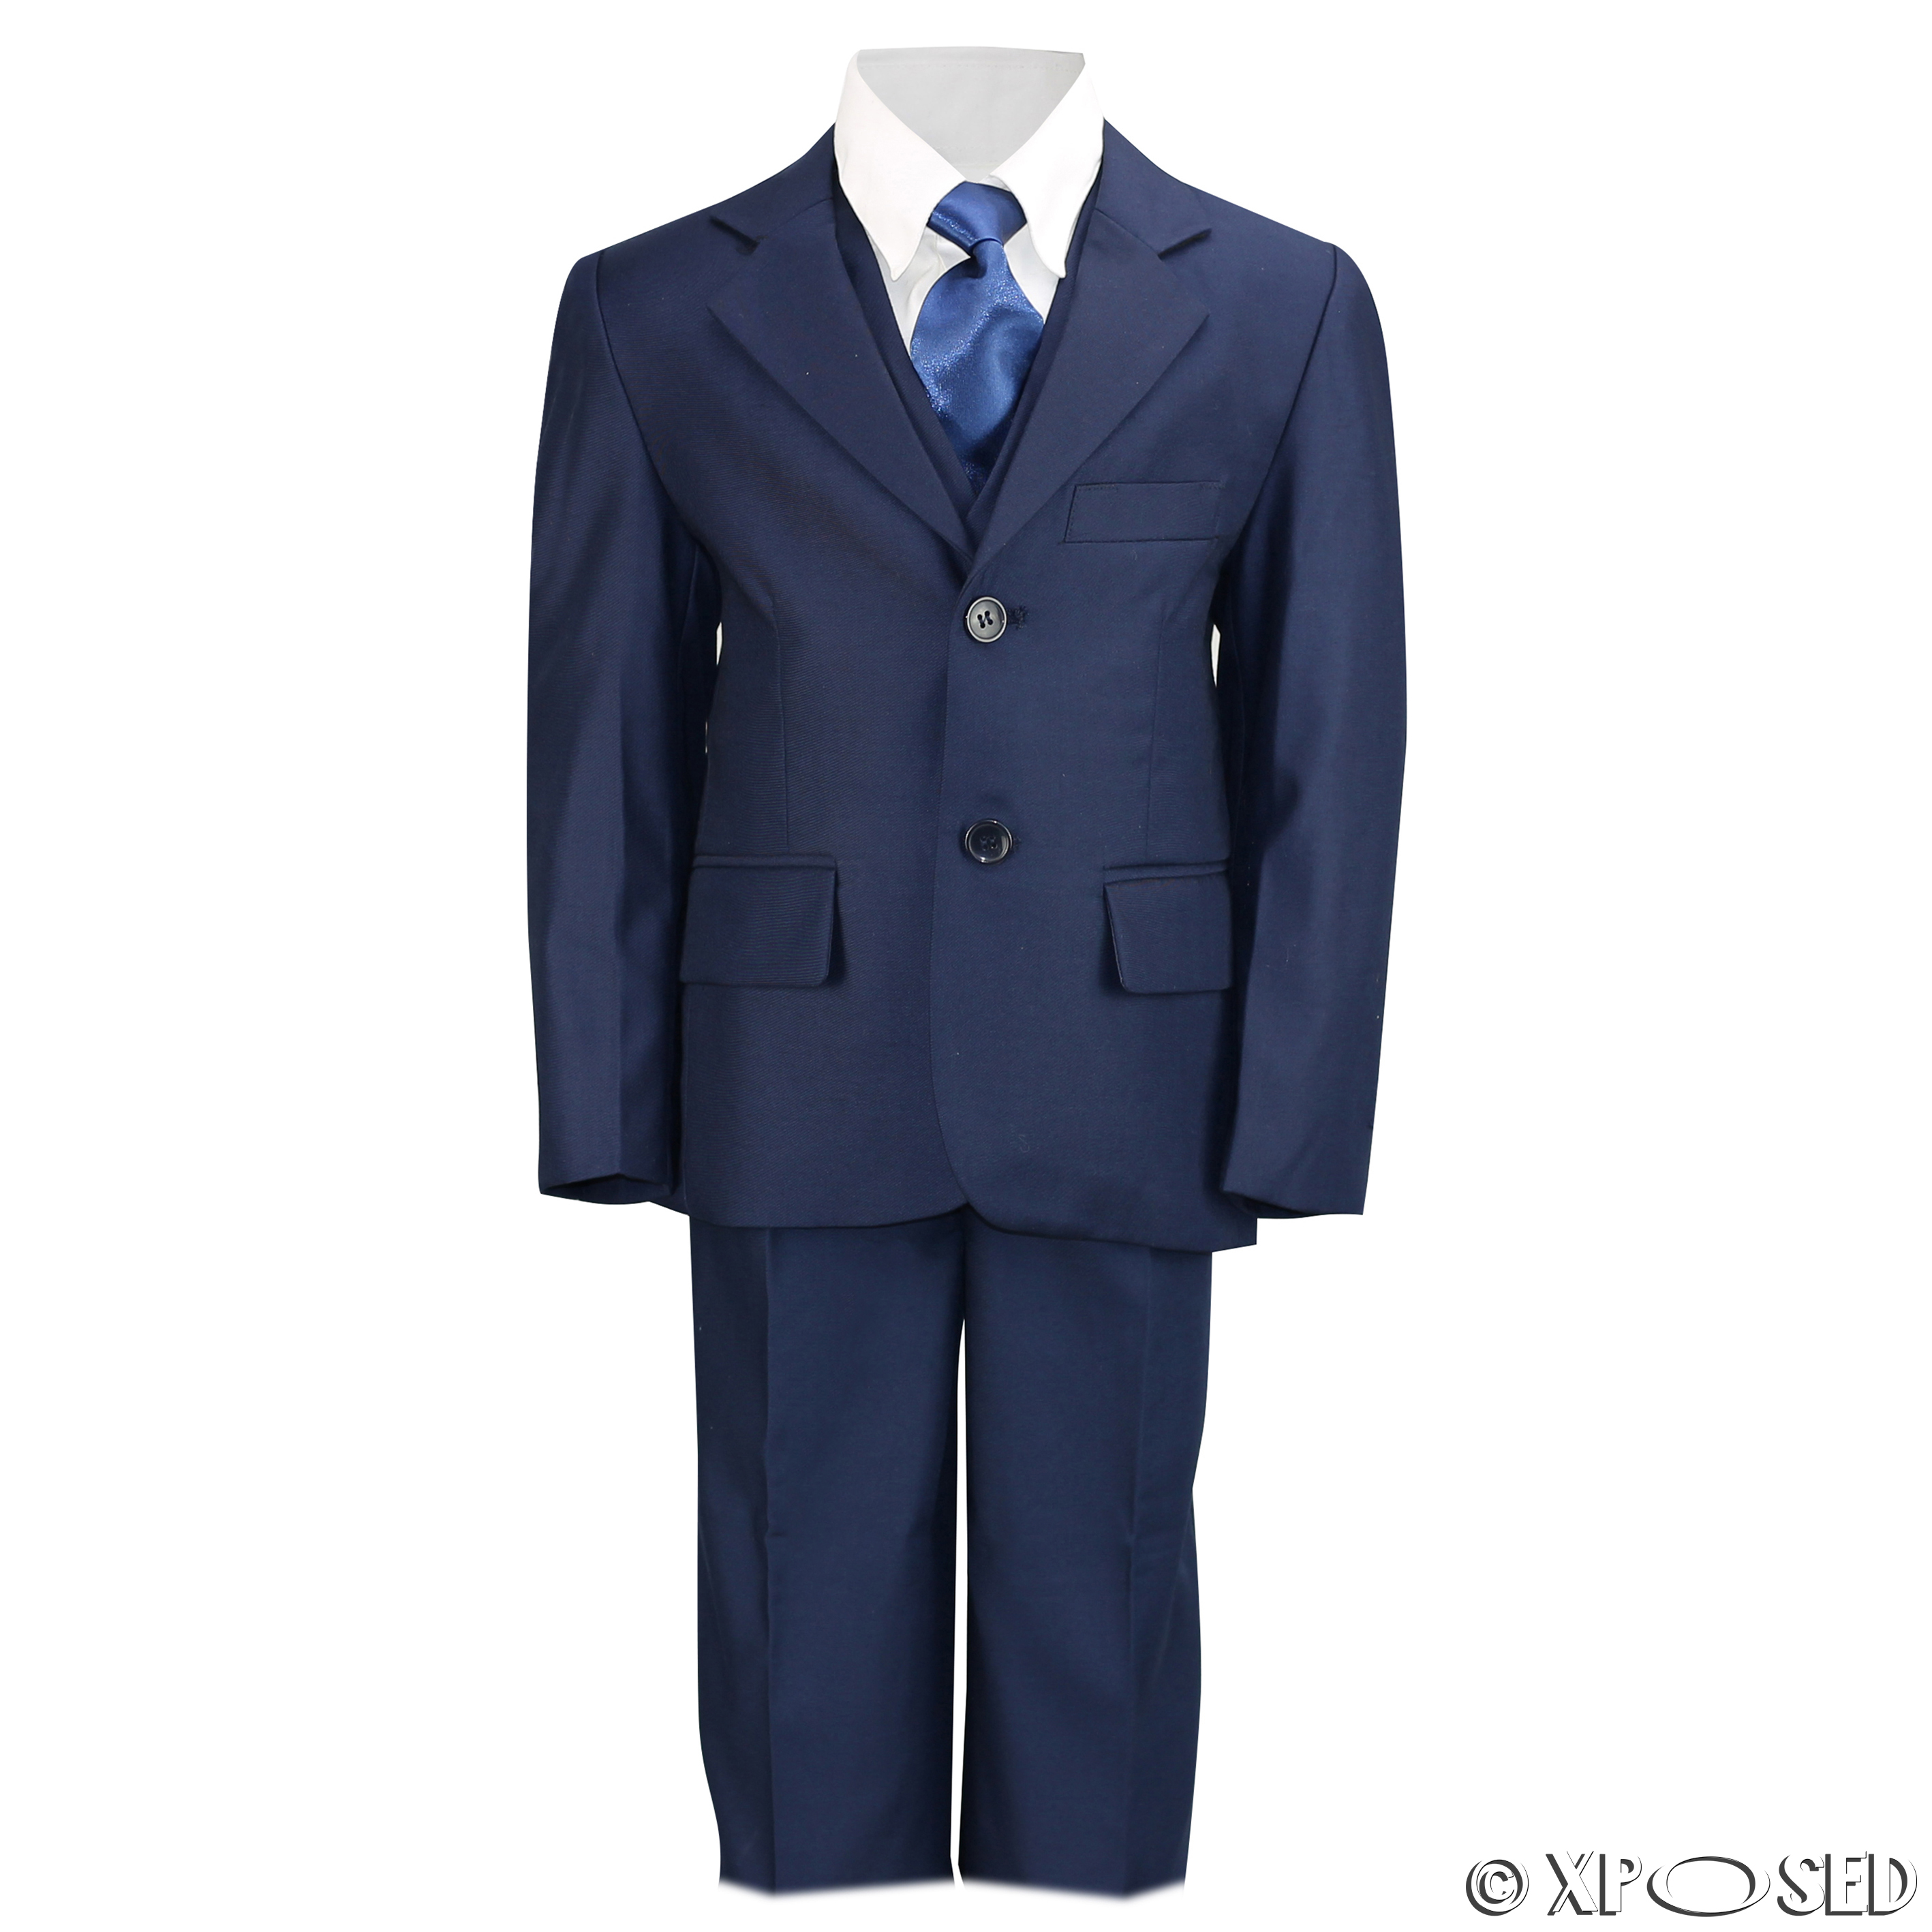 Boys 3 Piece Suits - Choose from the UK's largest range of 3 piece suits. We stock all colours including Royal Blue, Navy, Grey, Ivory, Cream boys 3pc suits and much more. Browse through our range and we are sure you will find a boys 3pc suit you have been looking for.